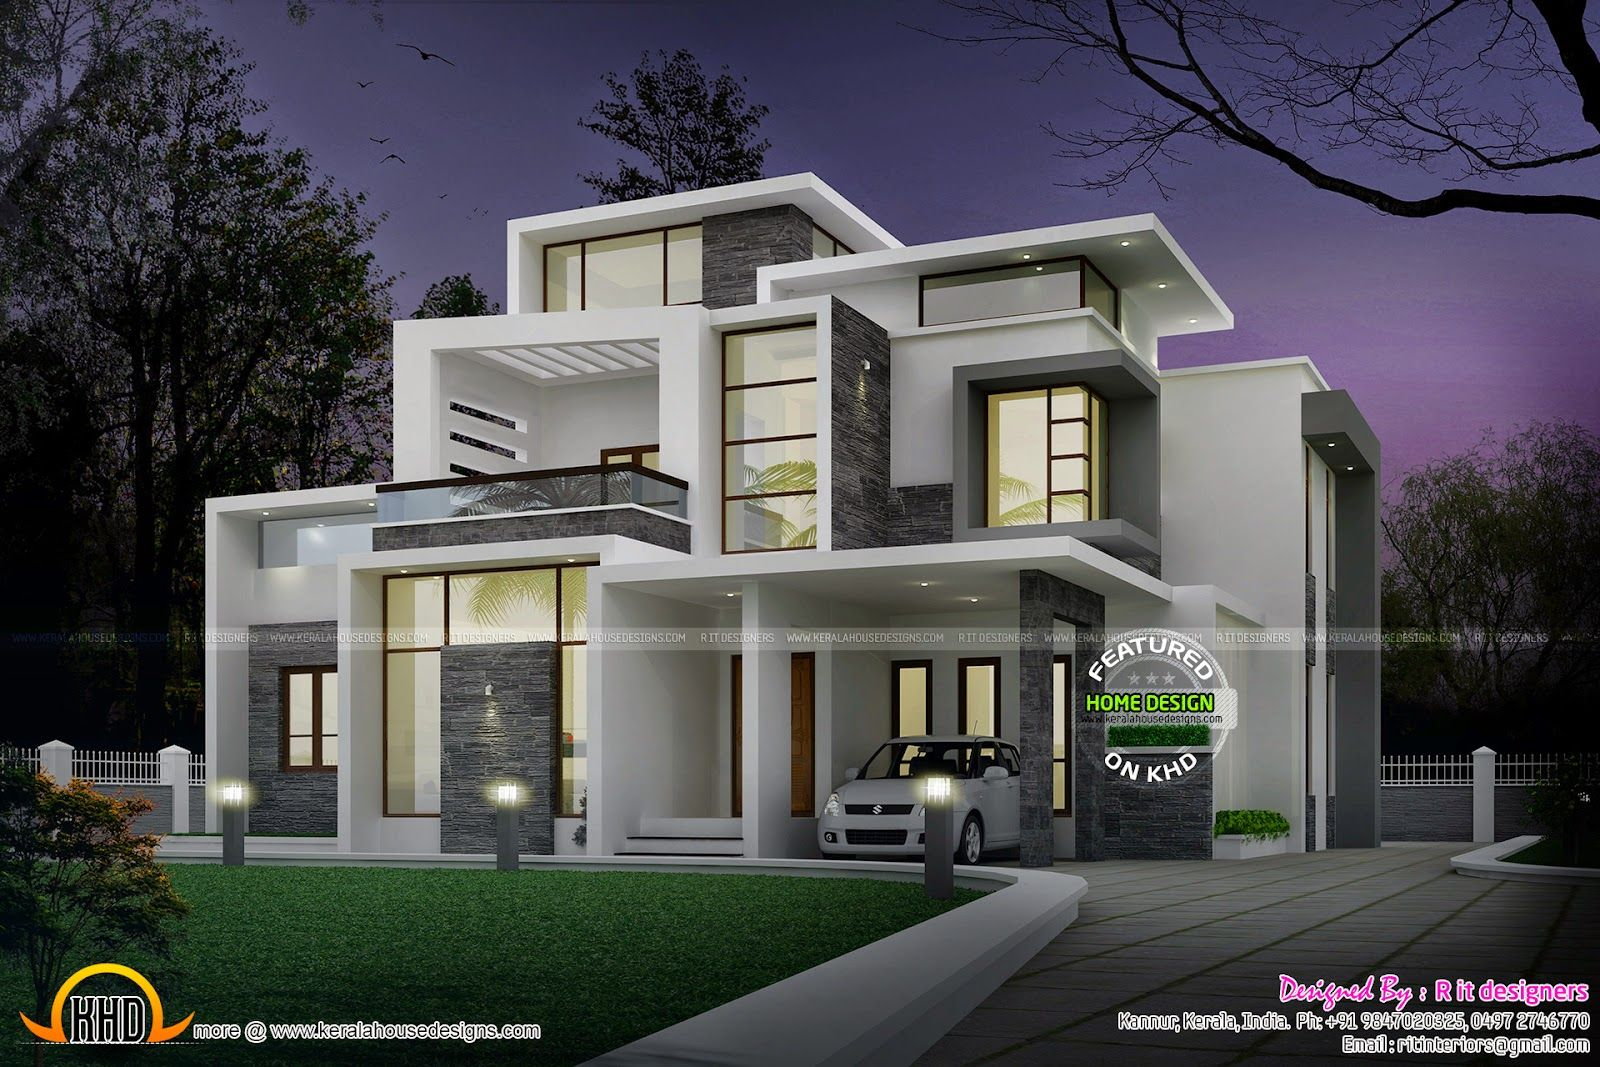 Grand contemporary home design kerala home design and New model contemporary house